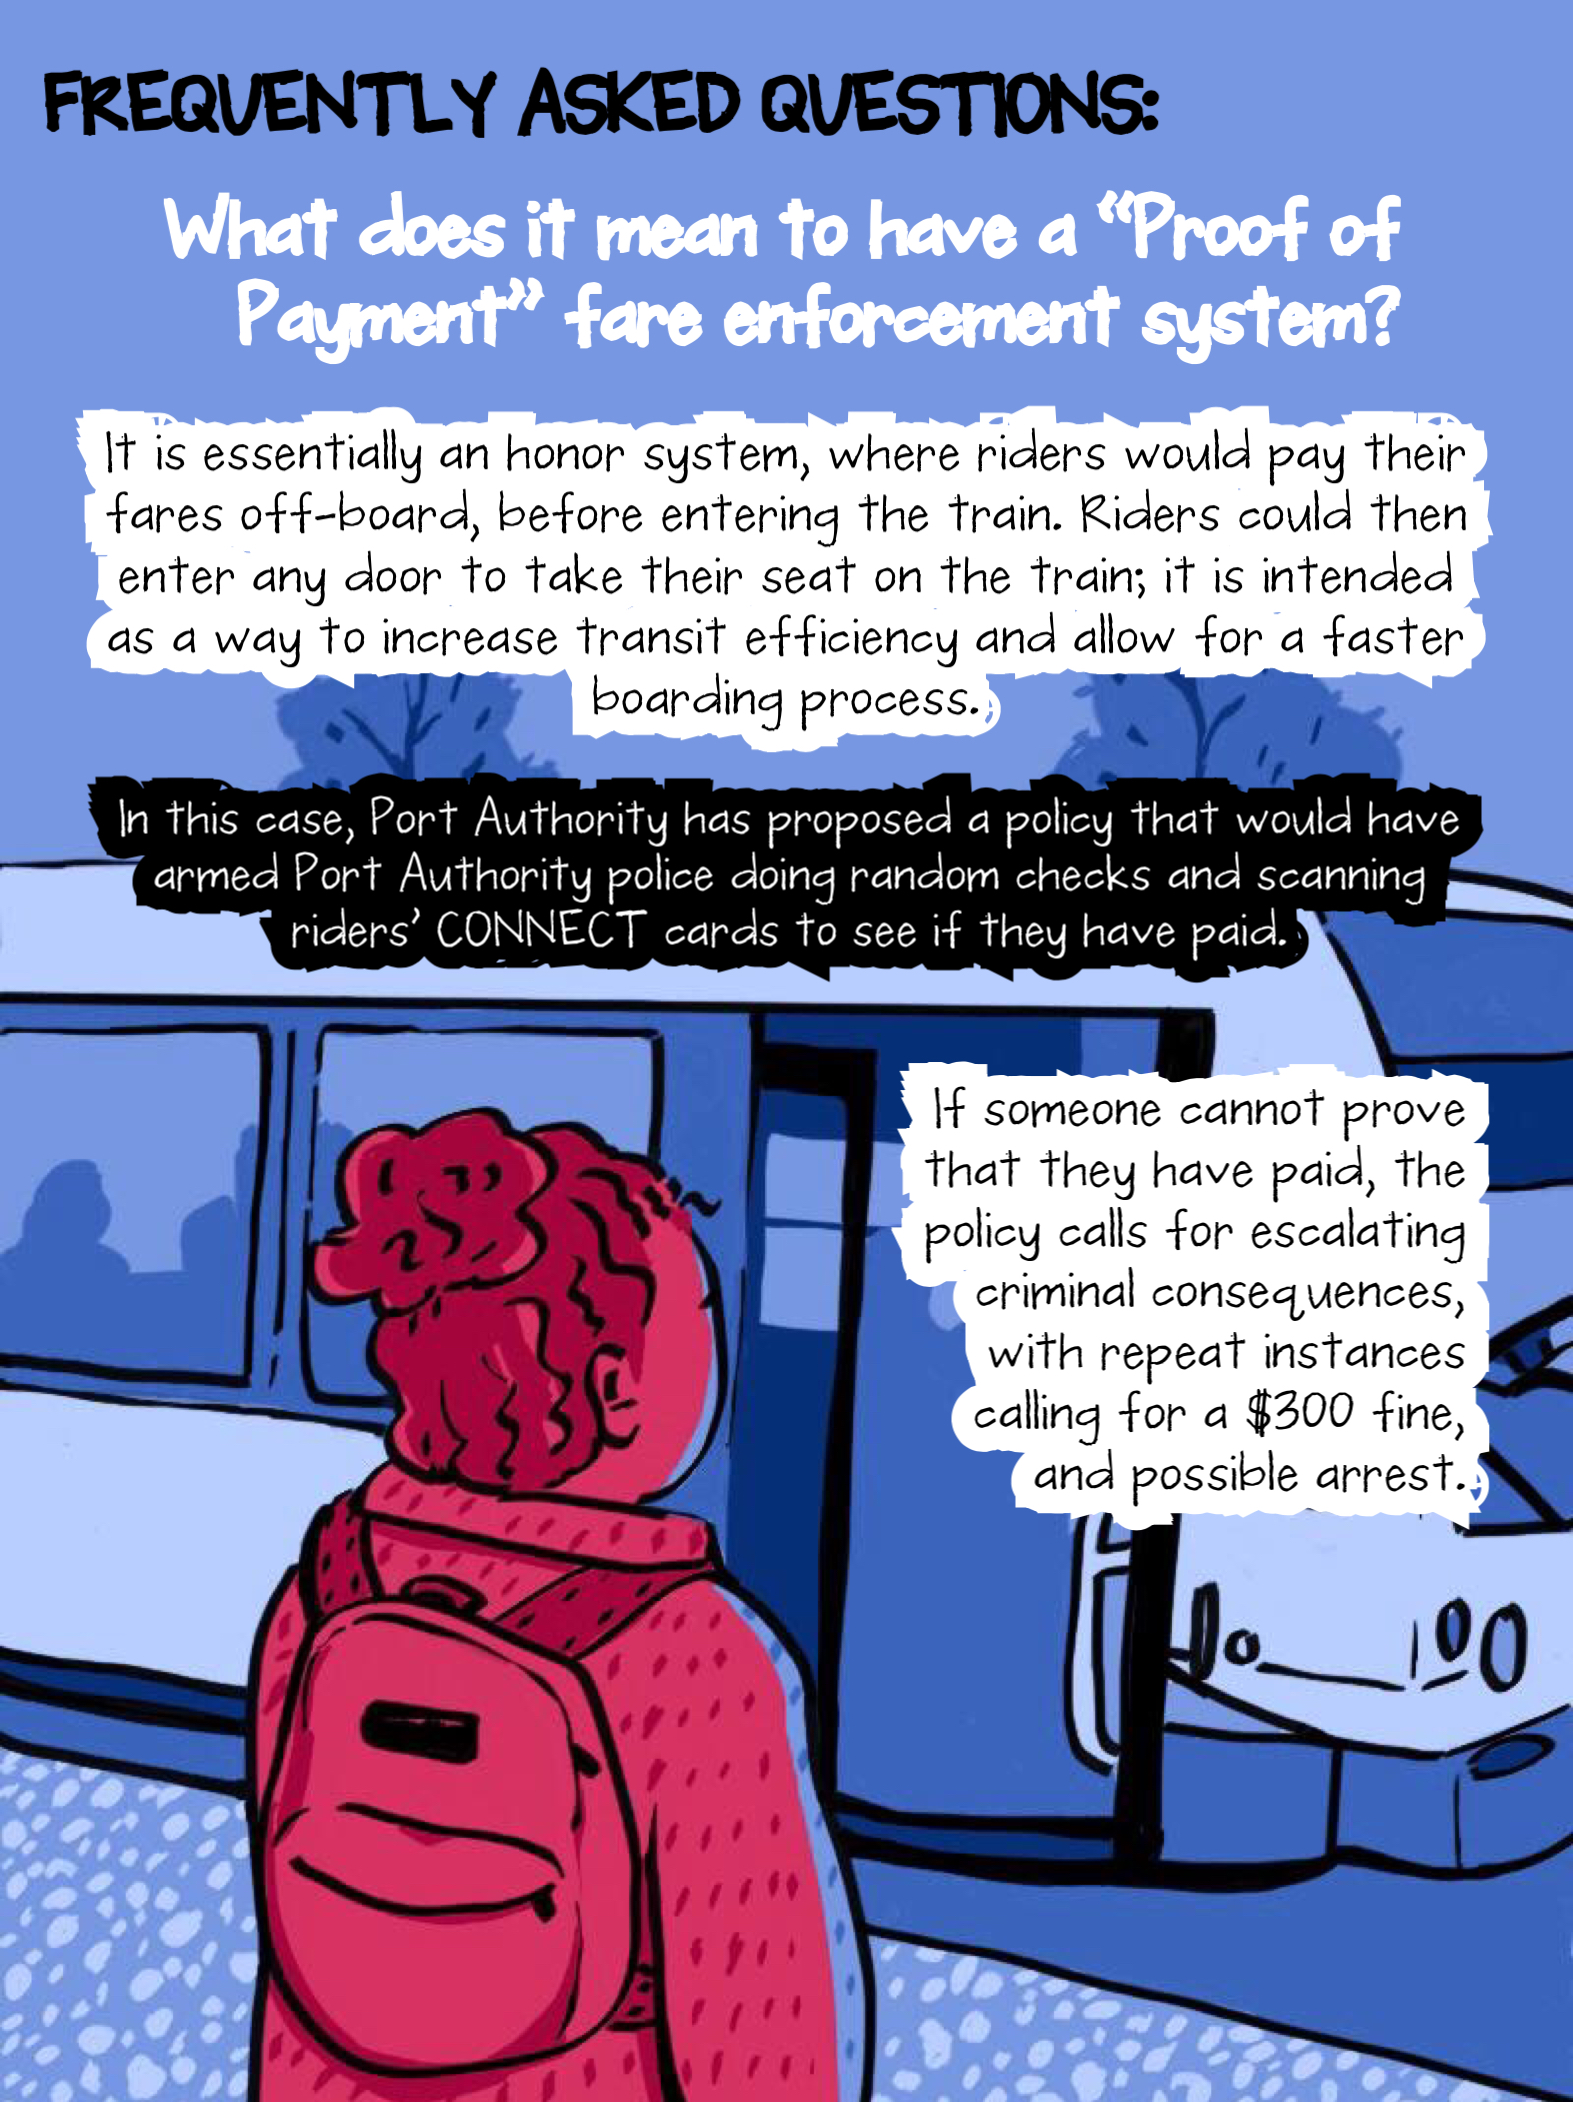 what does it mean to have a fare enforcement system